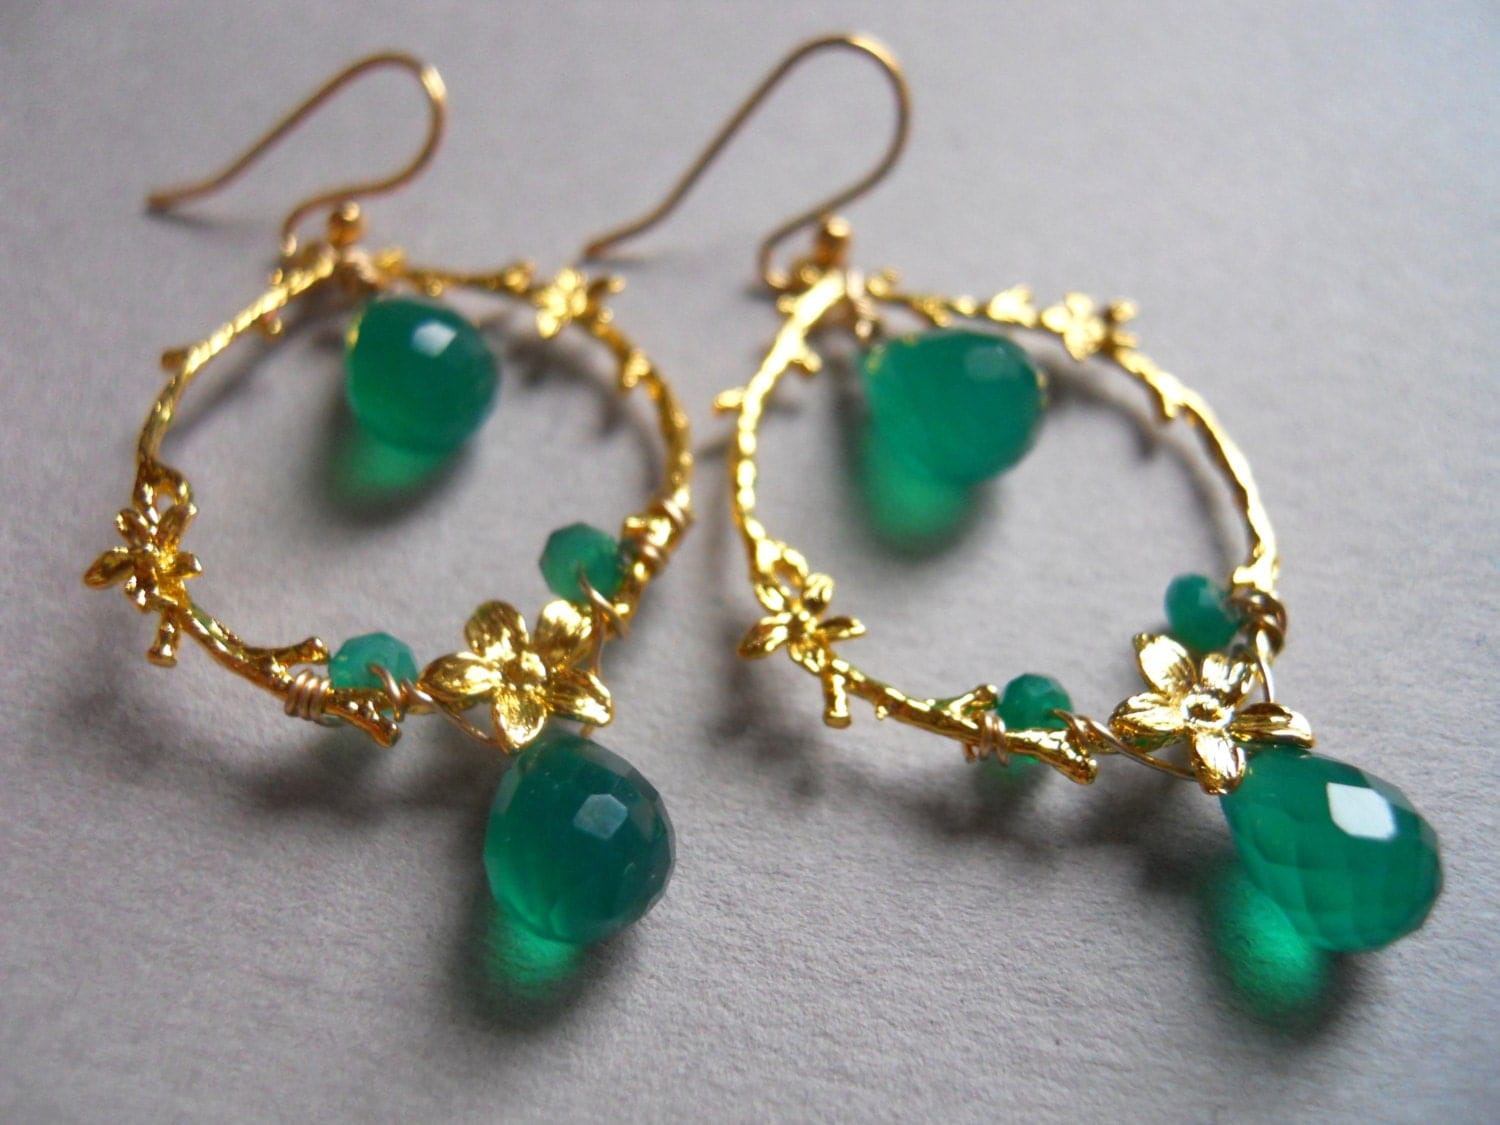 Emerald Elegance emerald green onyx flower leaf chandelier earrings - $63.00 USD